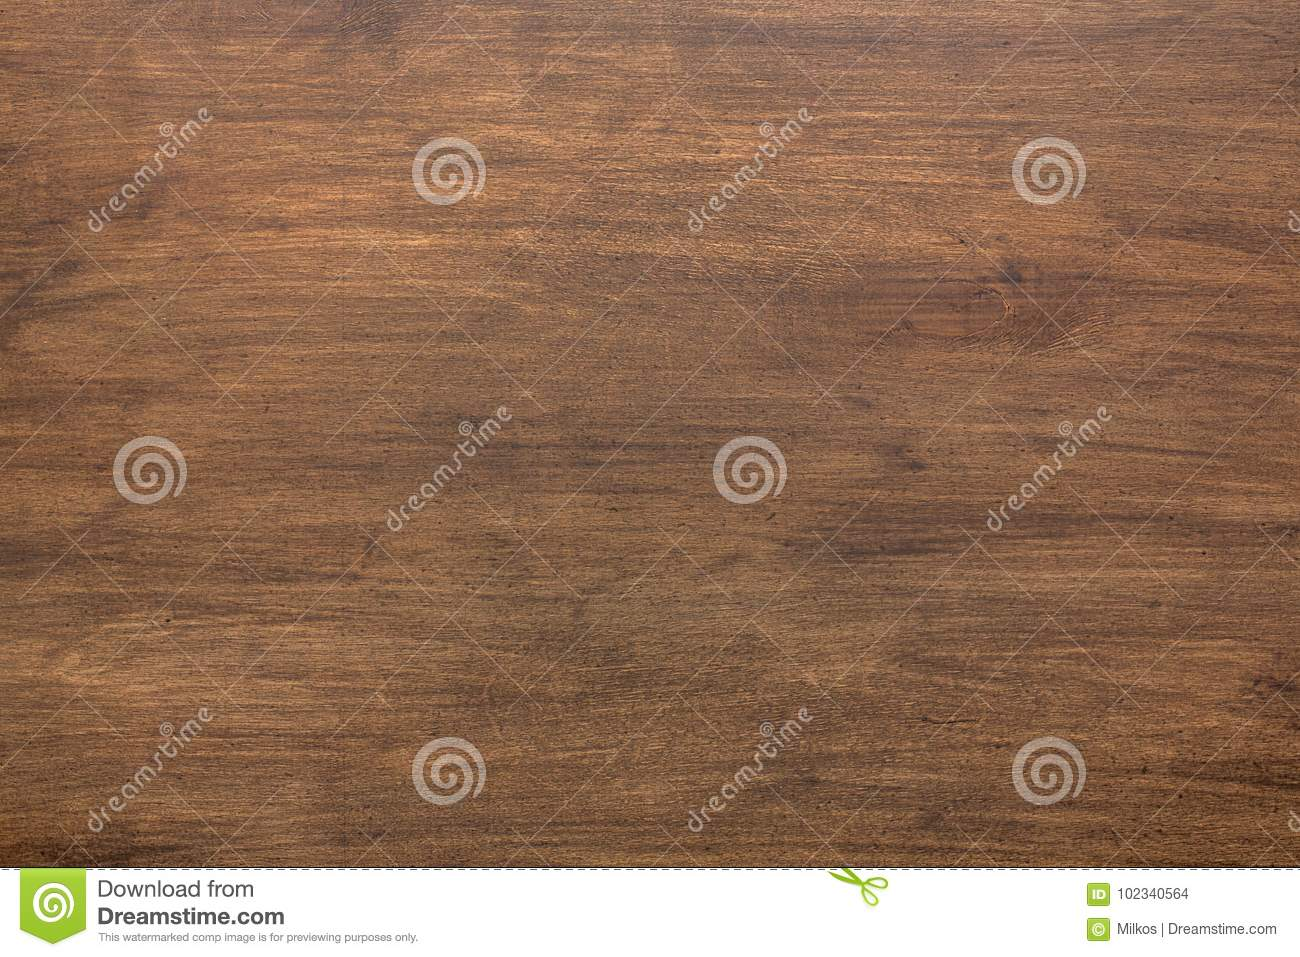 Natural rustic wood background and texture, copy space